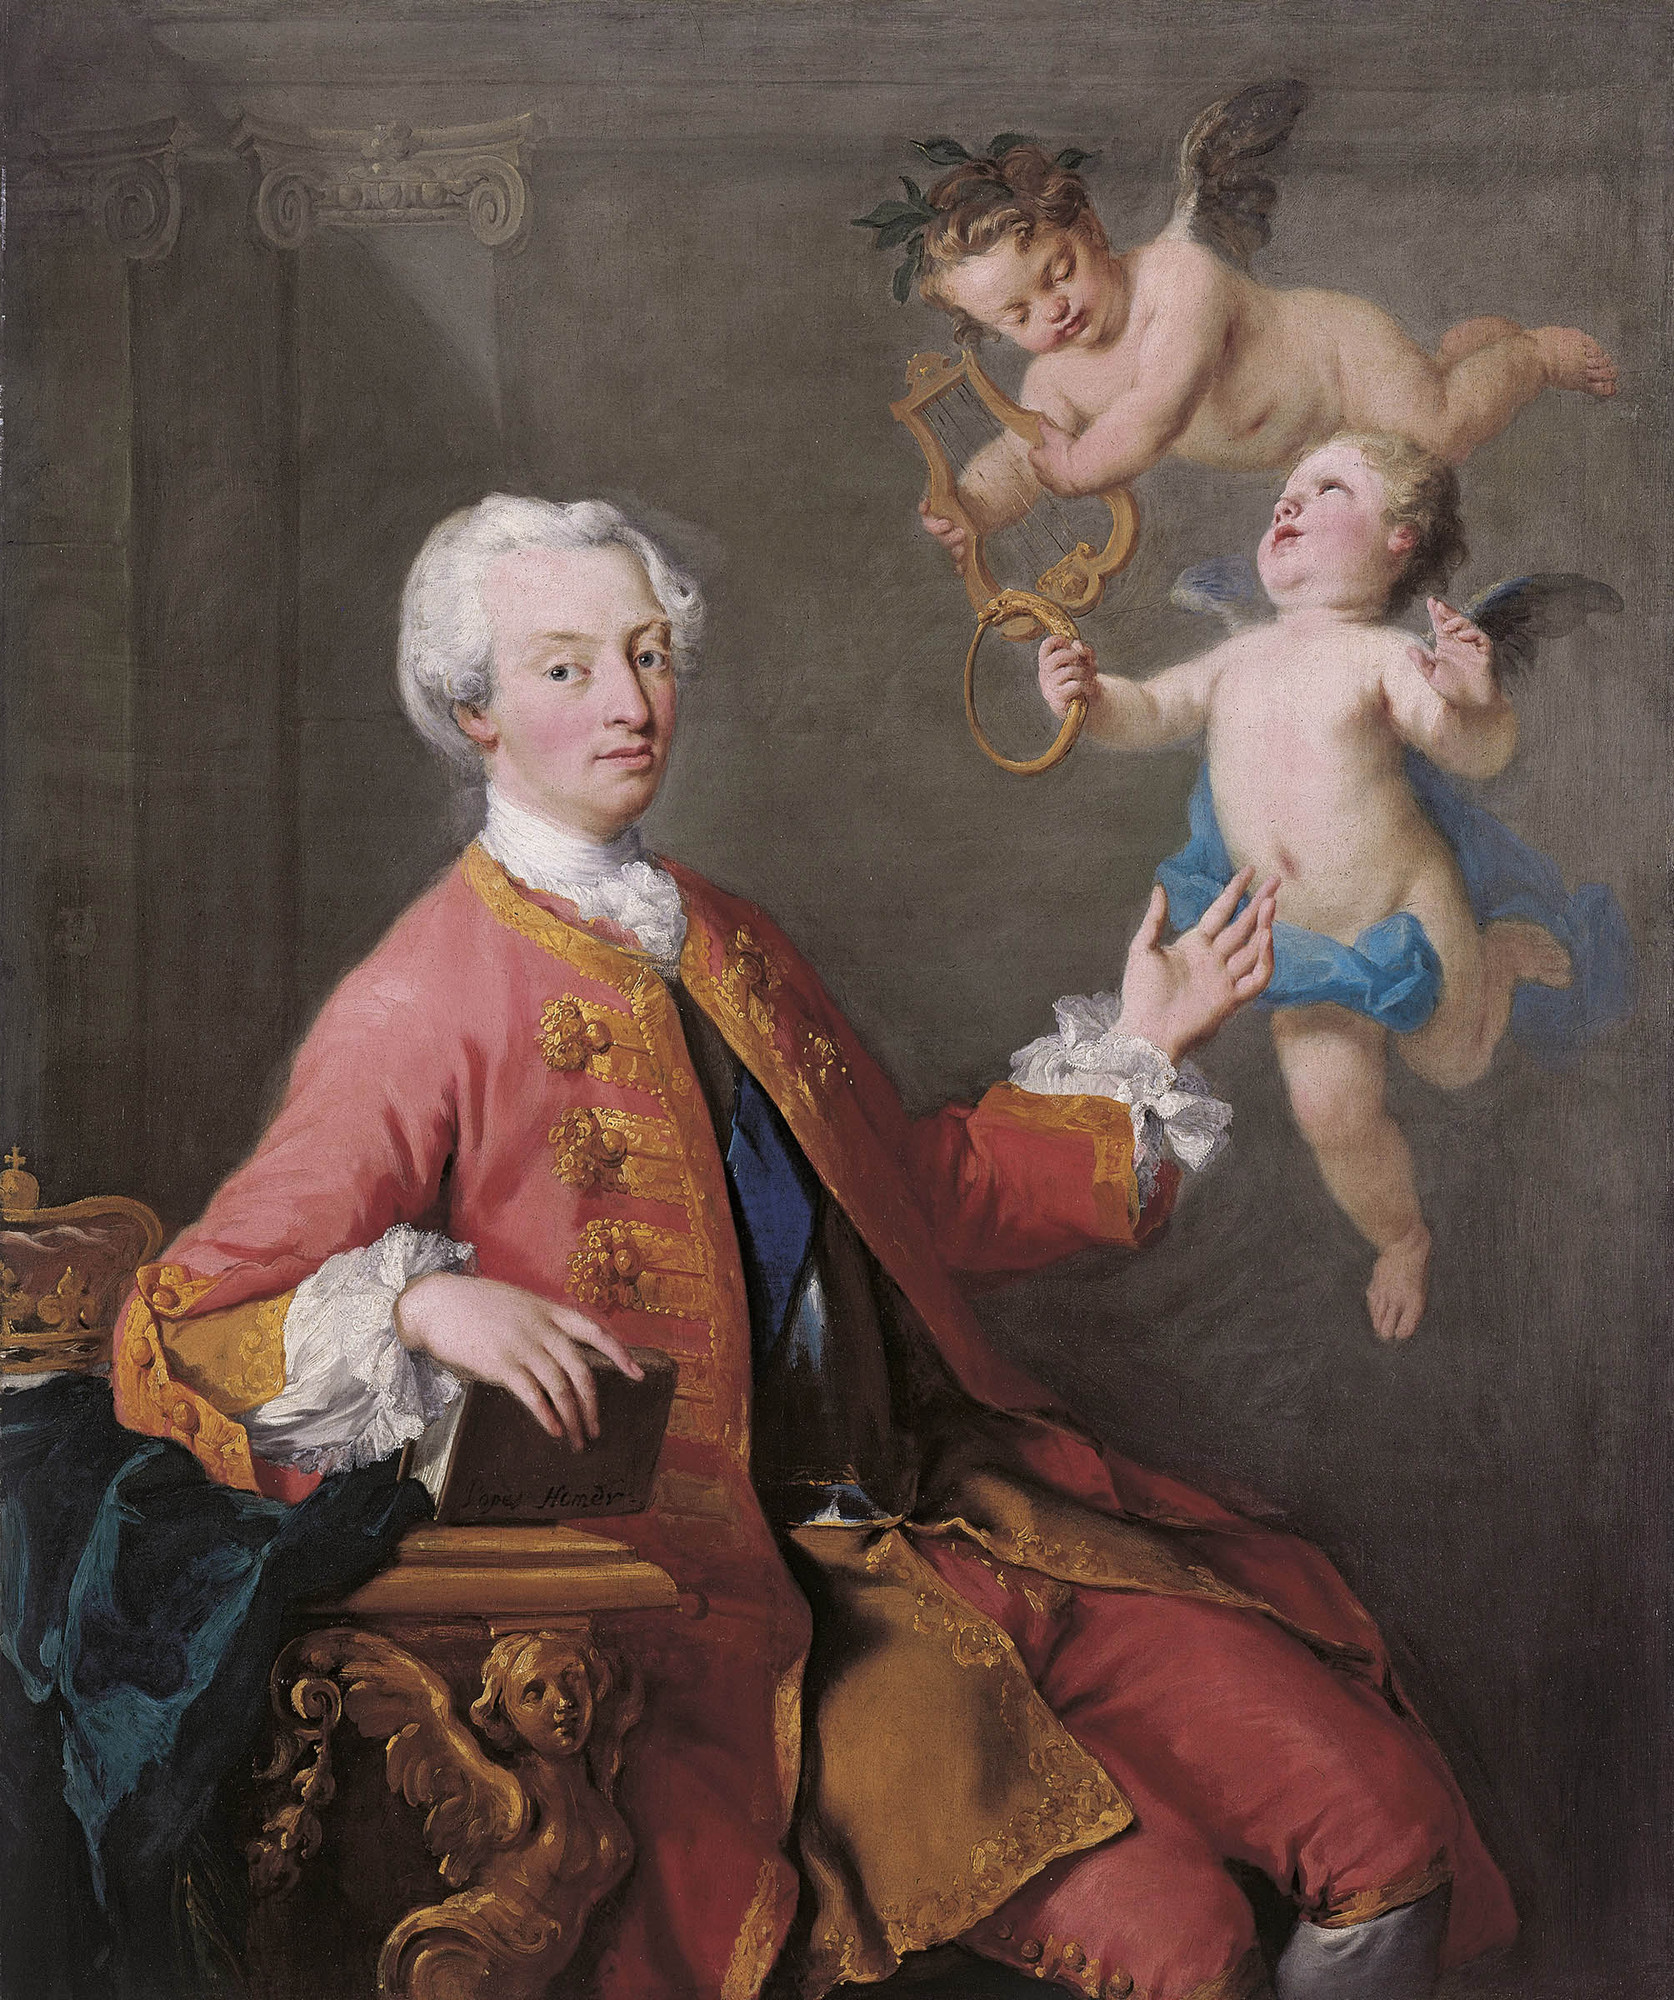 Portrait by Jacopo Amigoni, 1735